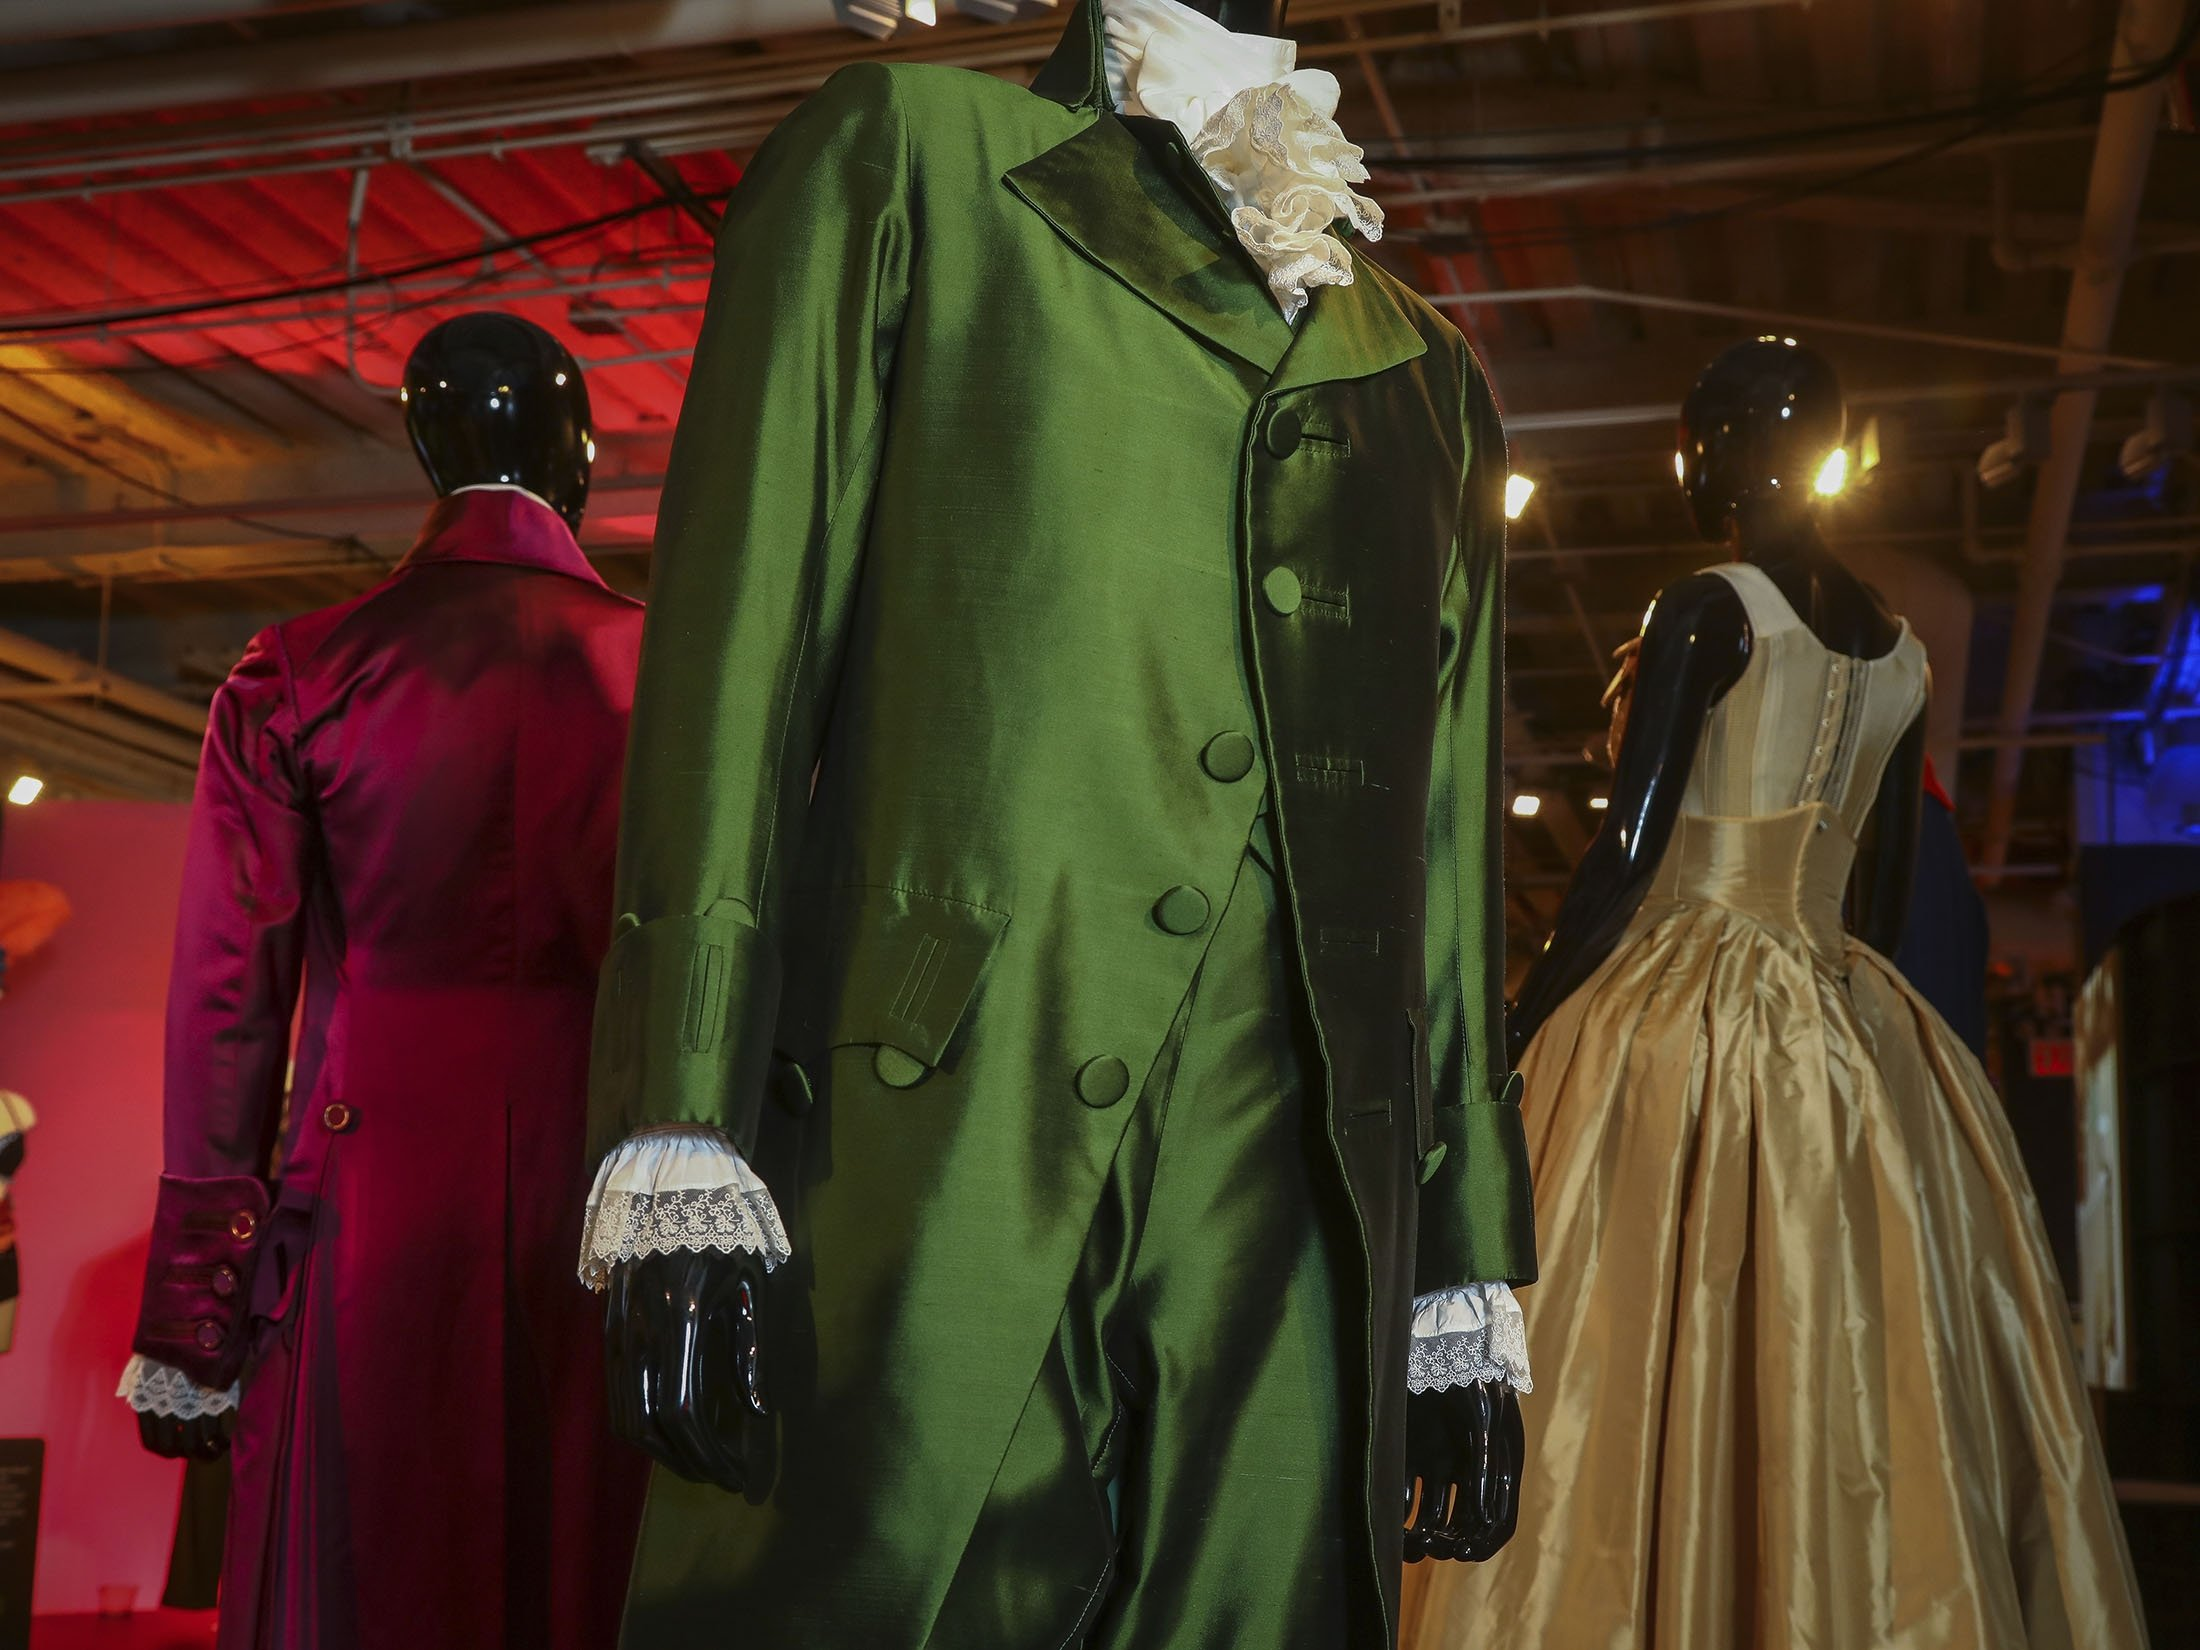 Costumes from the Broadway musical 'Hamilton' are displayed at the 'Showstoppers! Spectacular Costumes from Stage & Screen' exhibit in Times Square, New York, U.S., Aug. 2, 2021. (AP Photo)